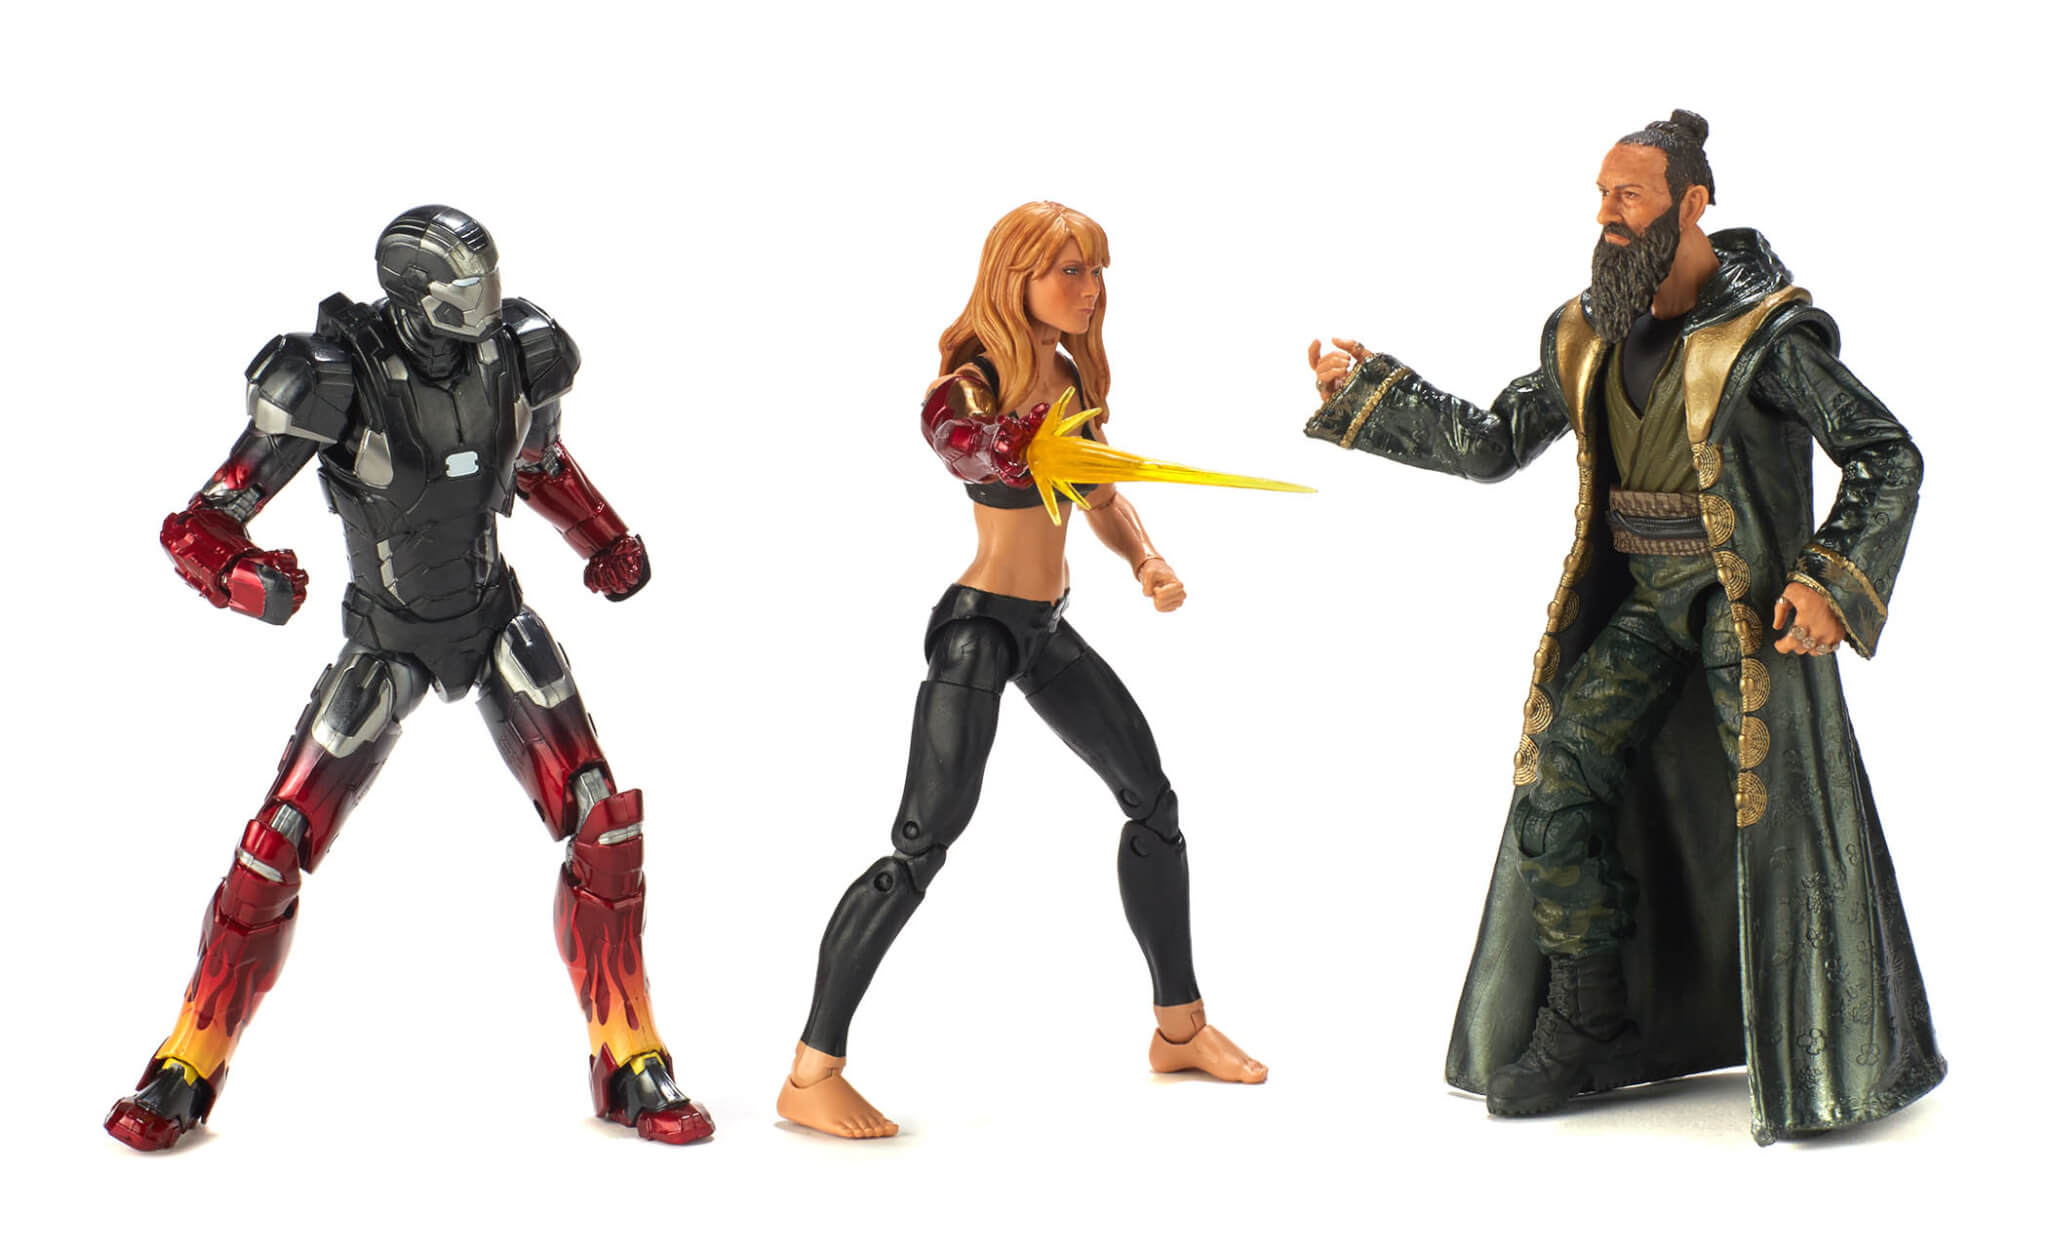 Hasbro 2018 MCU Iron Man Pepper Potts and the Mandarin 3-pack